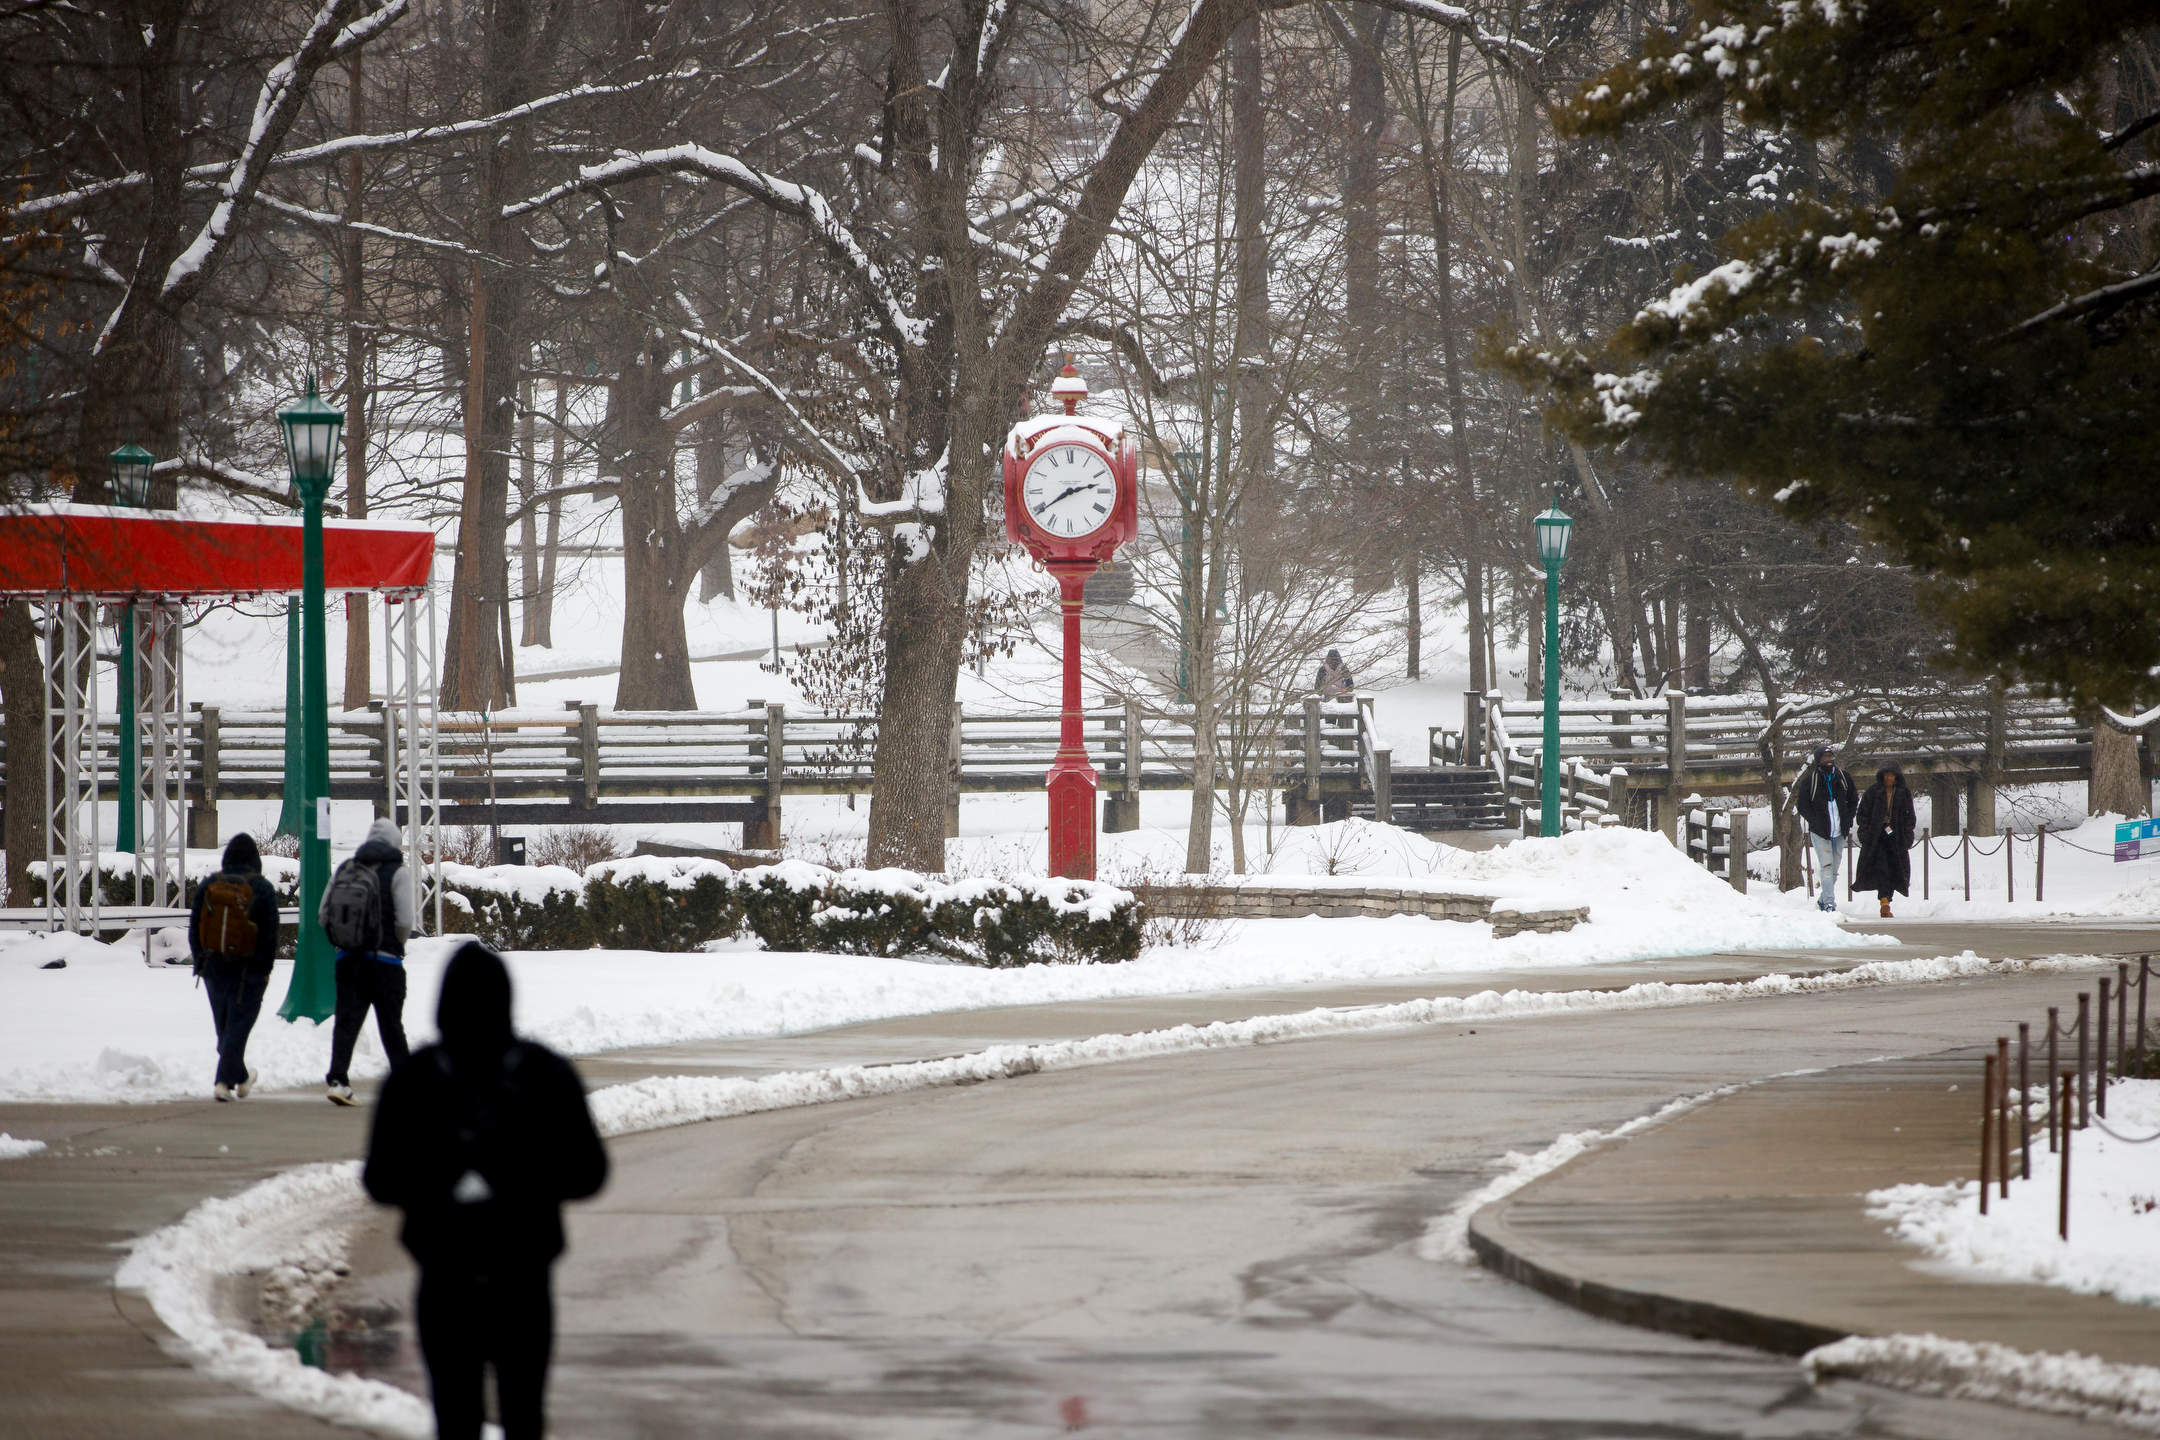 Students walk to classes past a red clock near Woodburn Hall on a winter day at Indiana University Bloomington on Wednesday, Feb. 10, 2021.